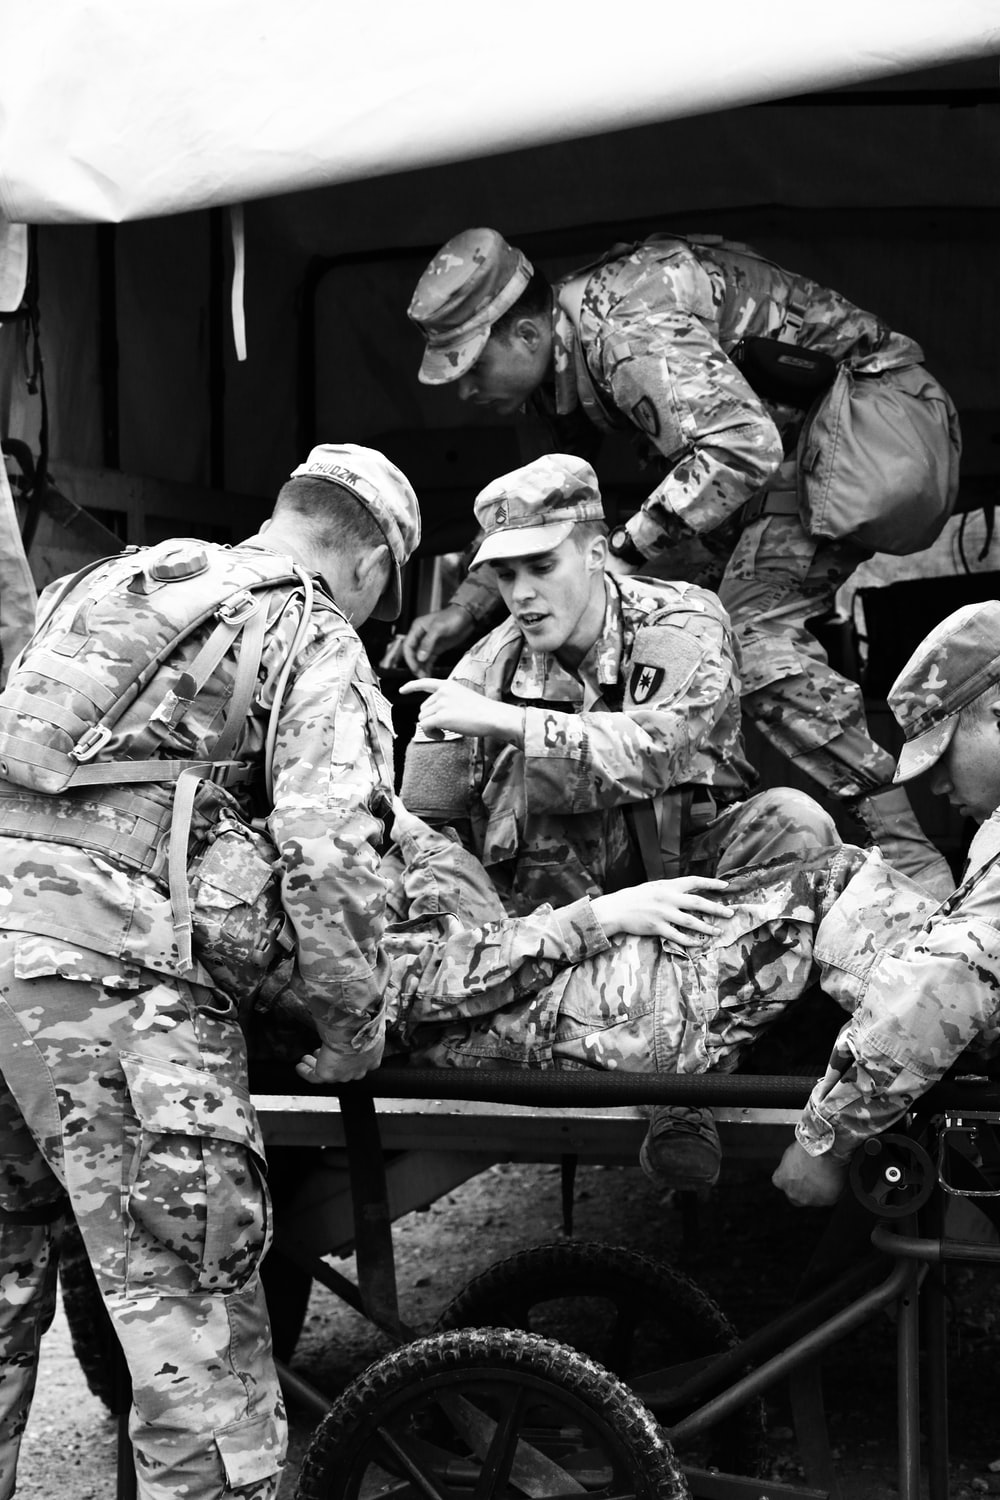 grayscale photography of army